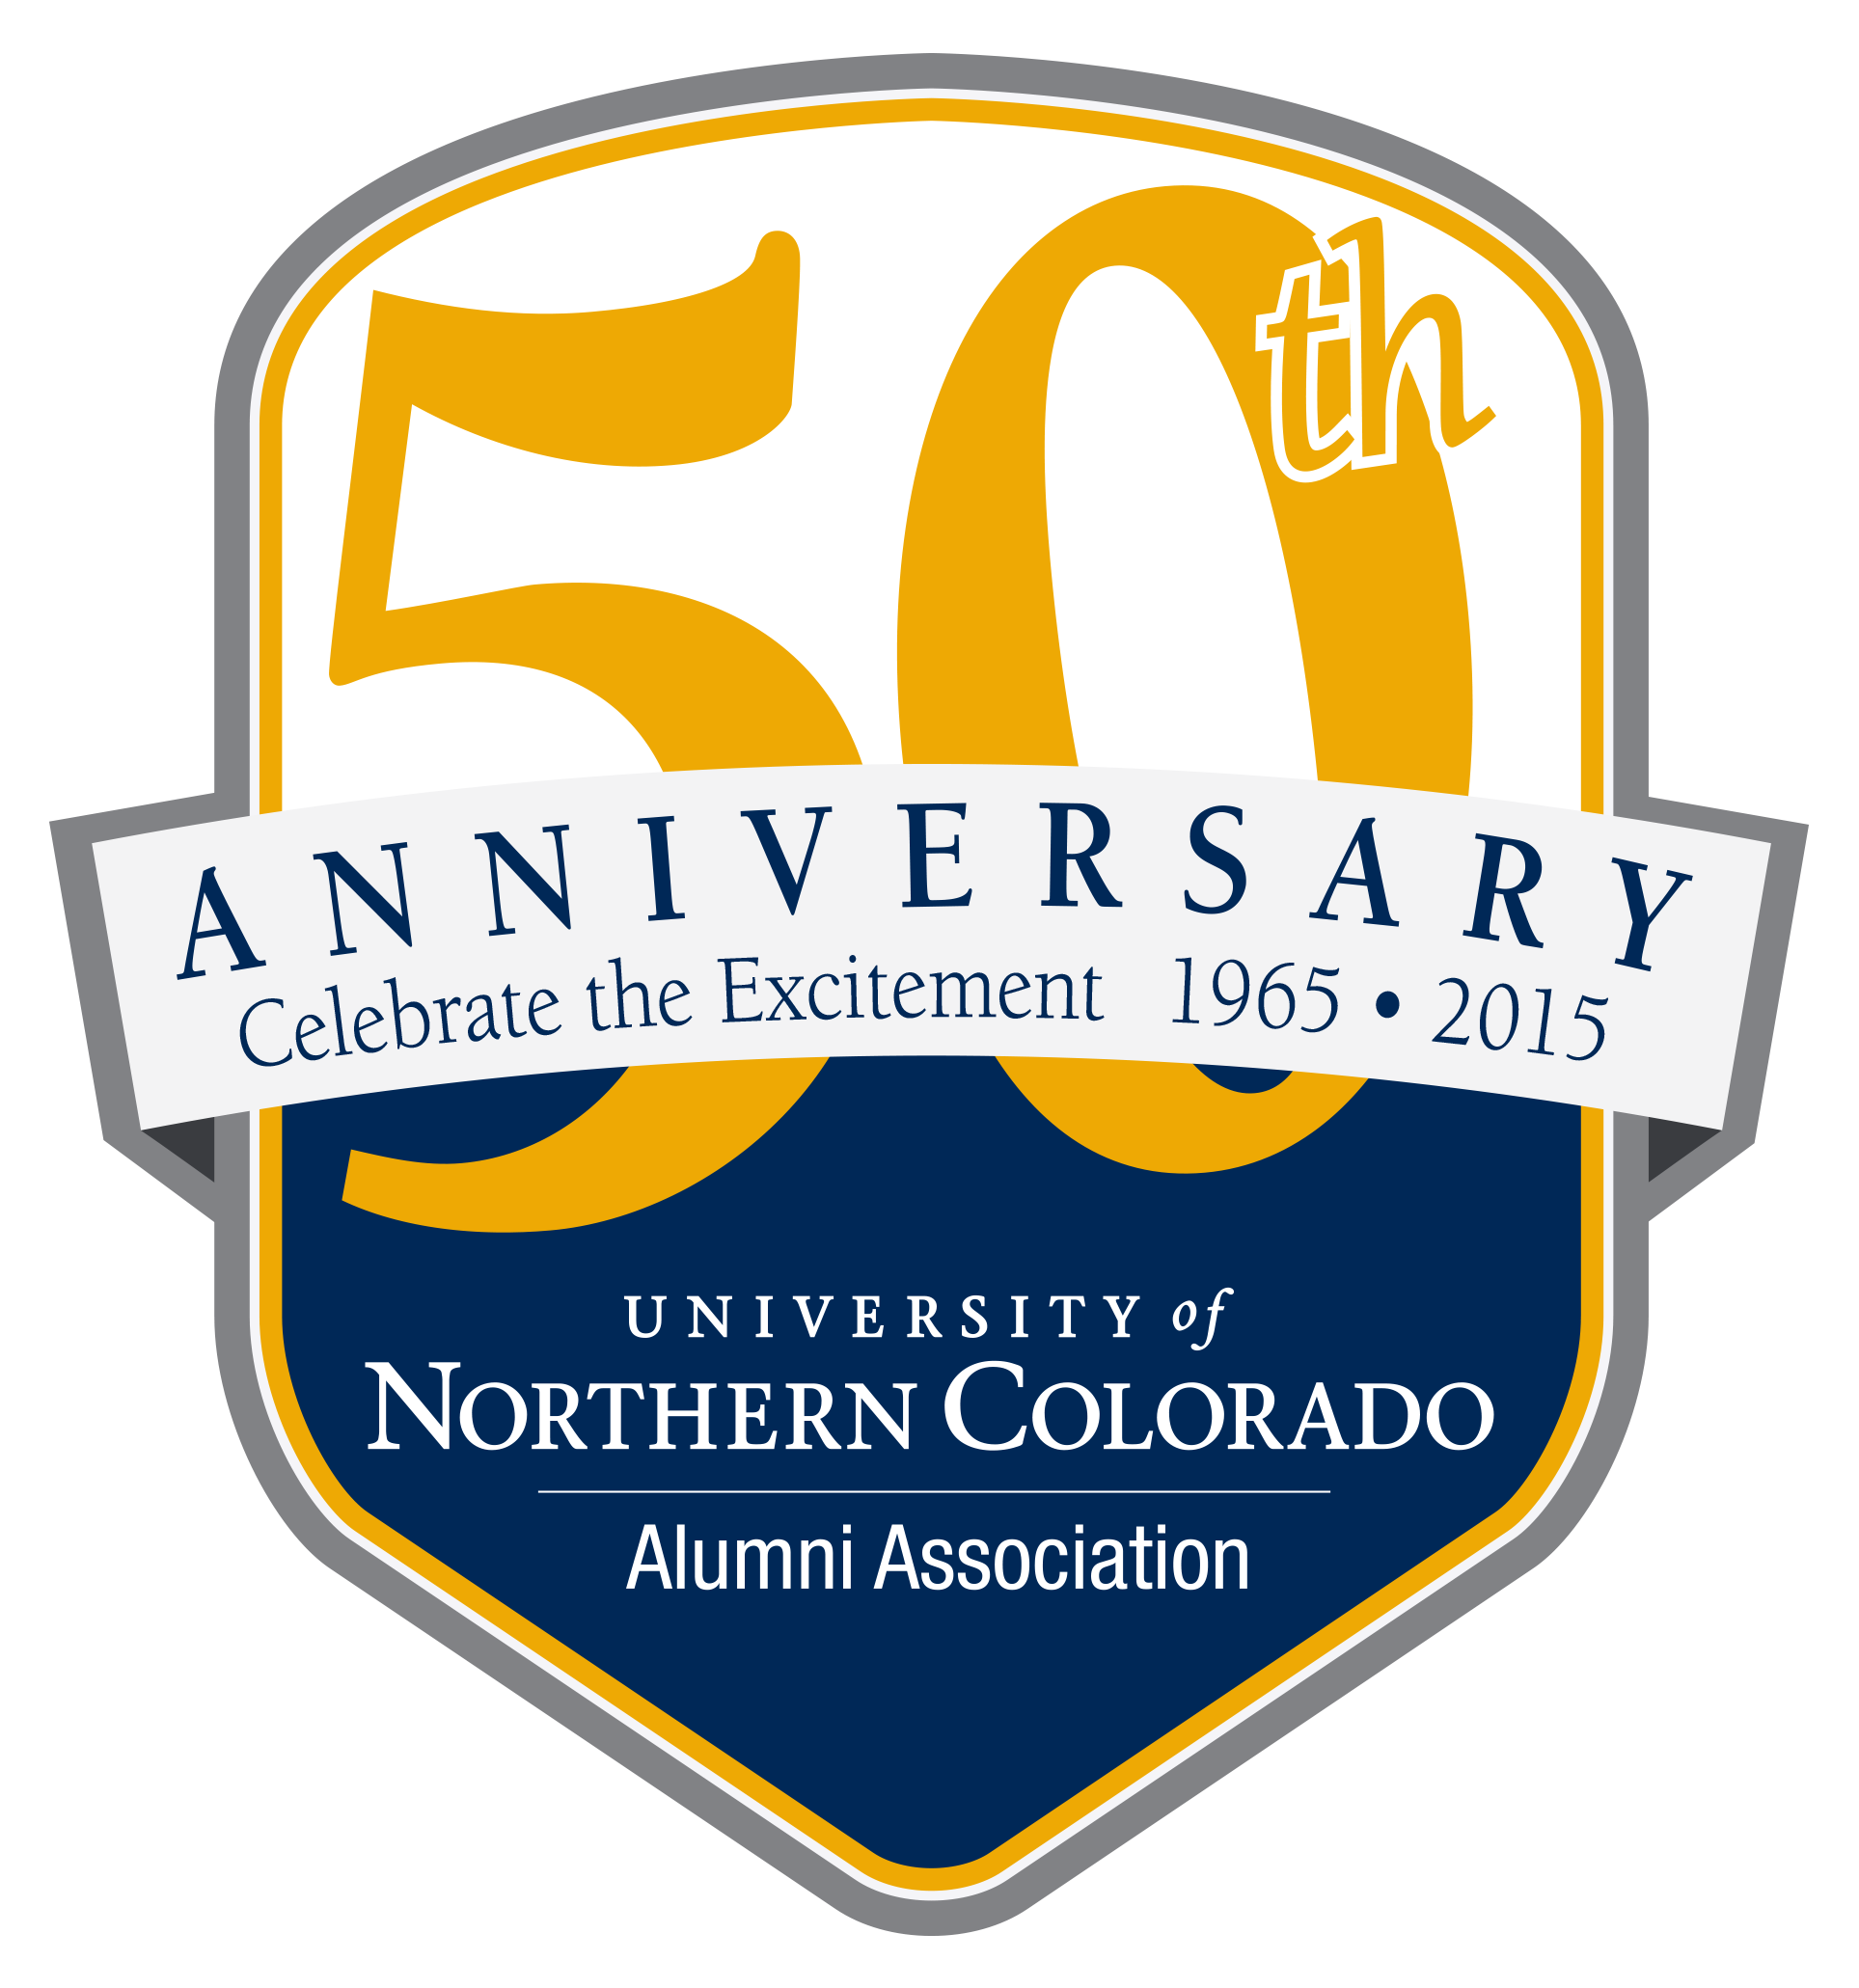 Alumni Association 50 Year Anniversary Logo